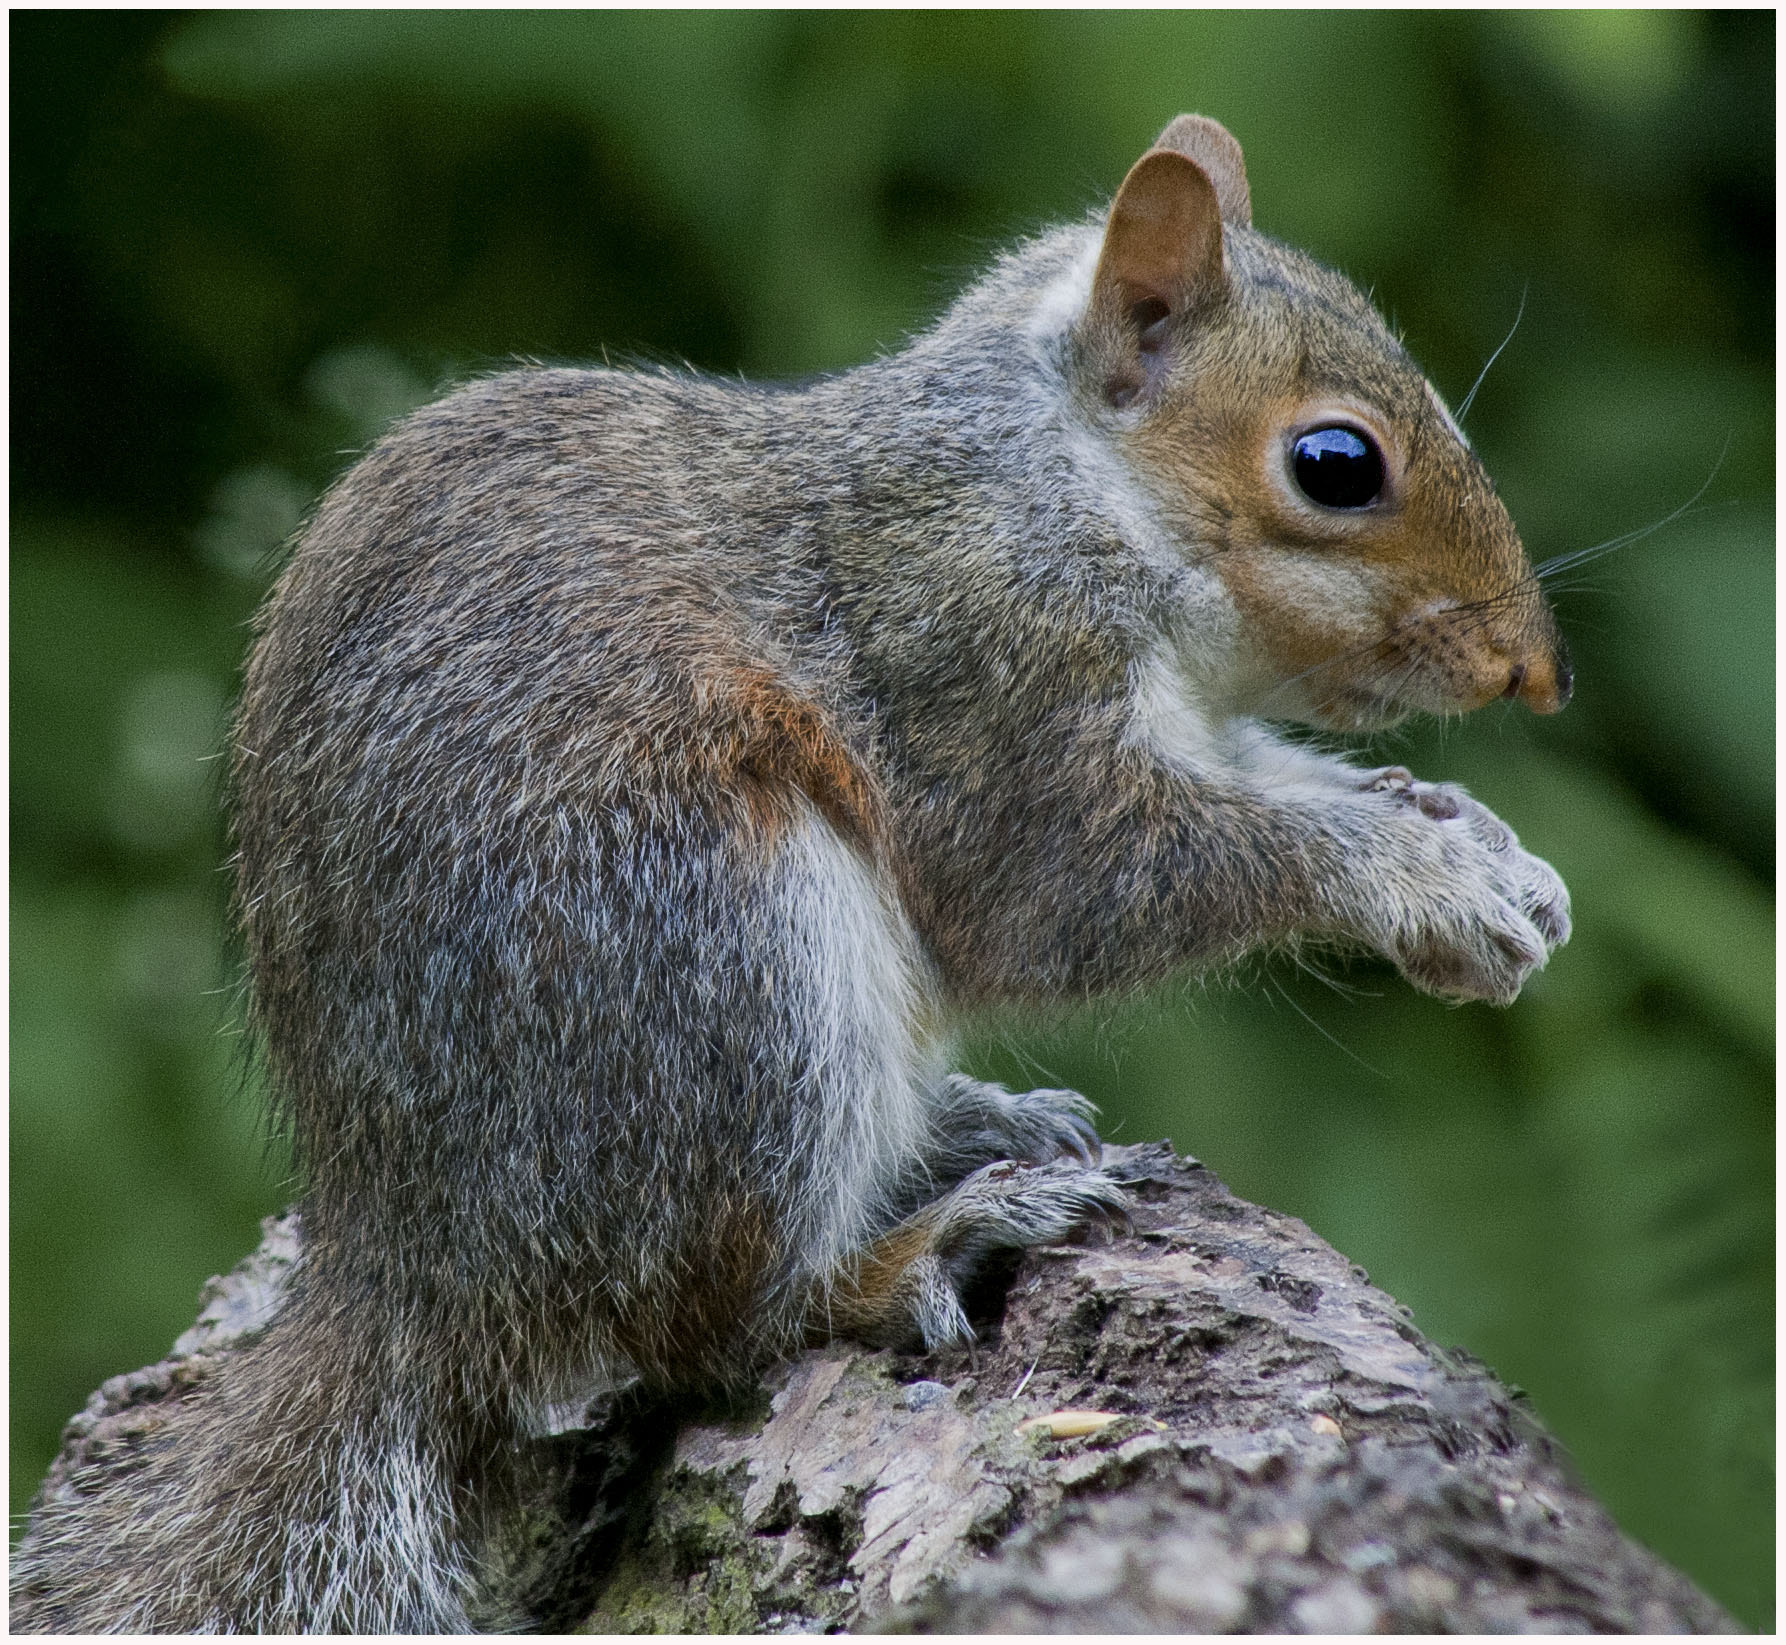 Photograph The Squirrel by Jamie Hyde on 500px